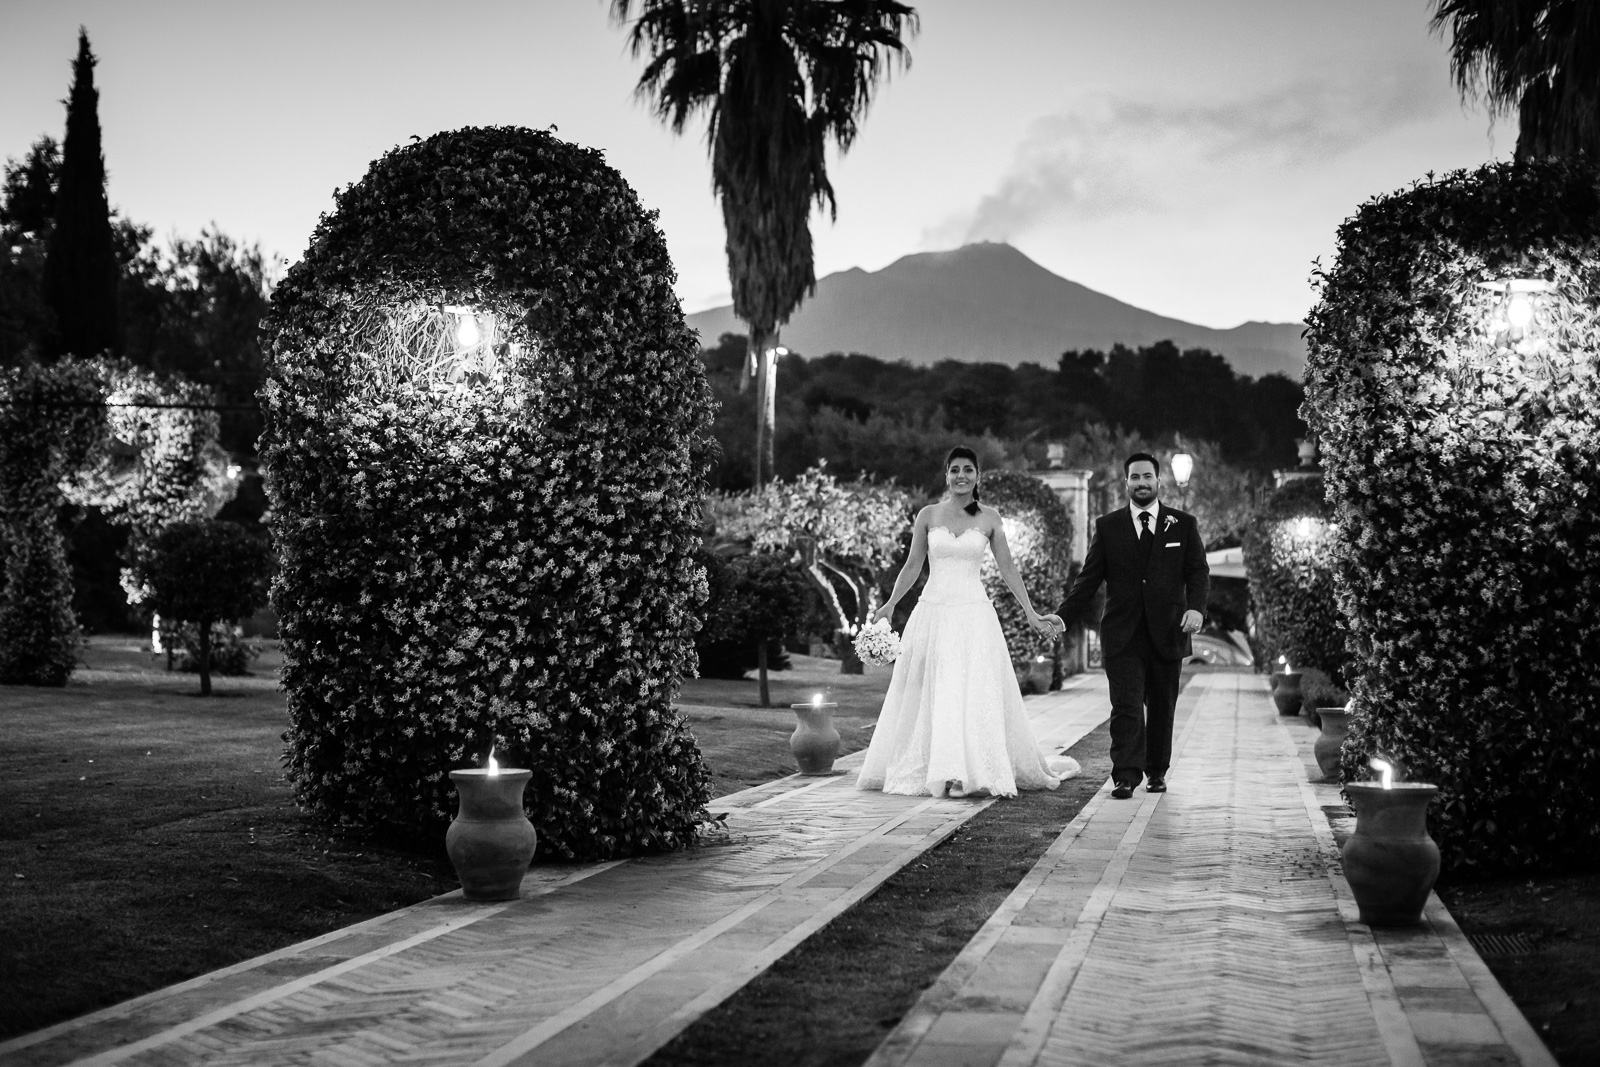 Destination Wedding in Sicily - Catania